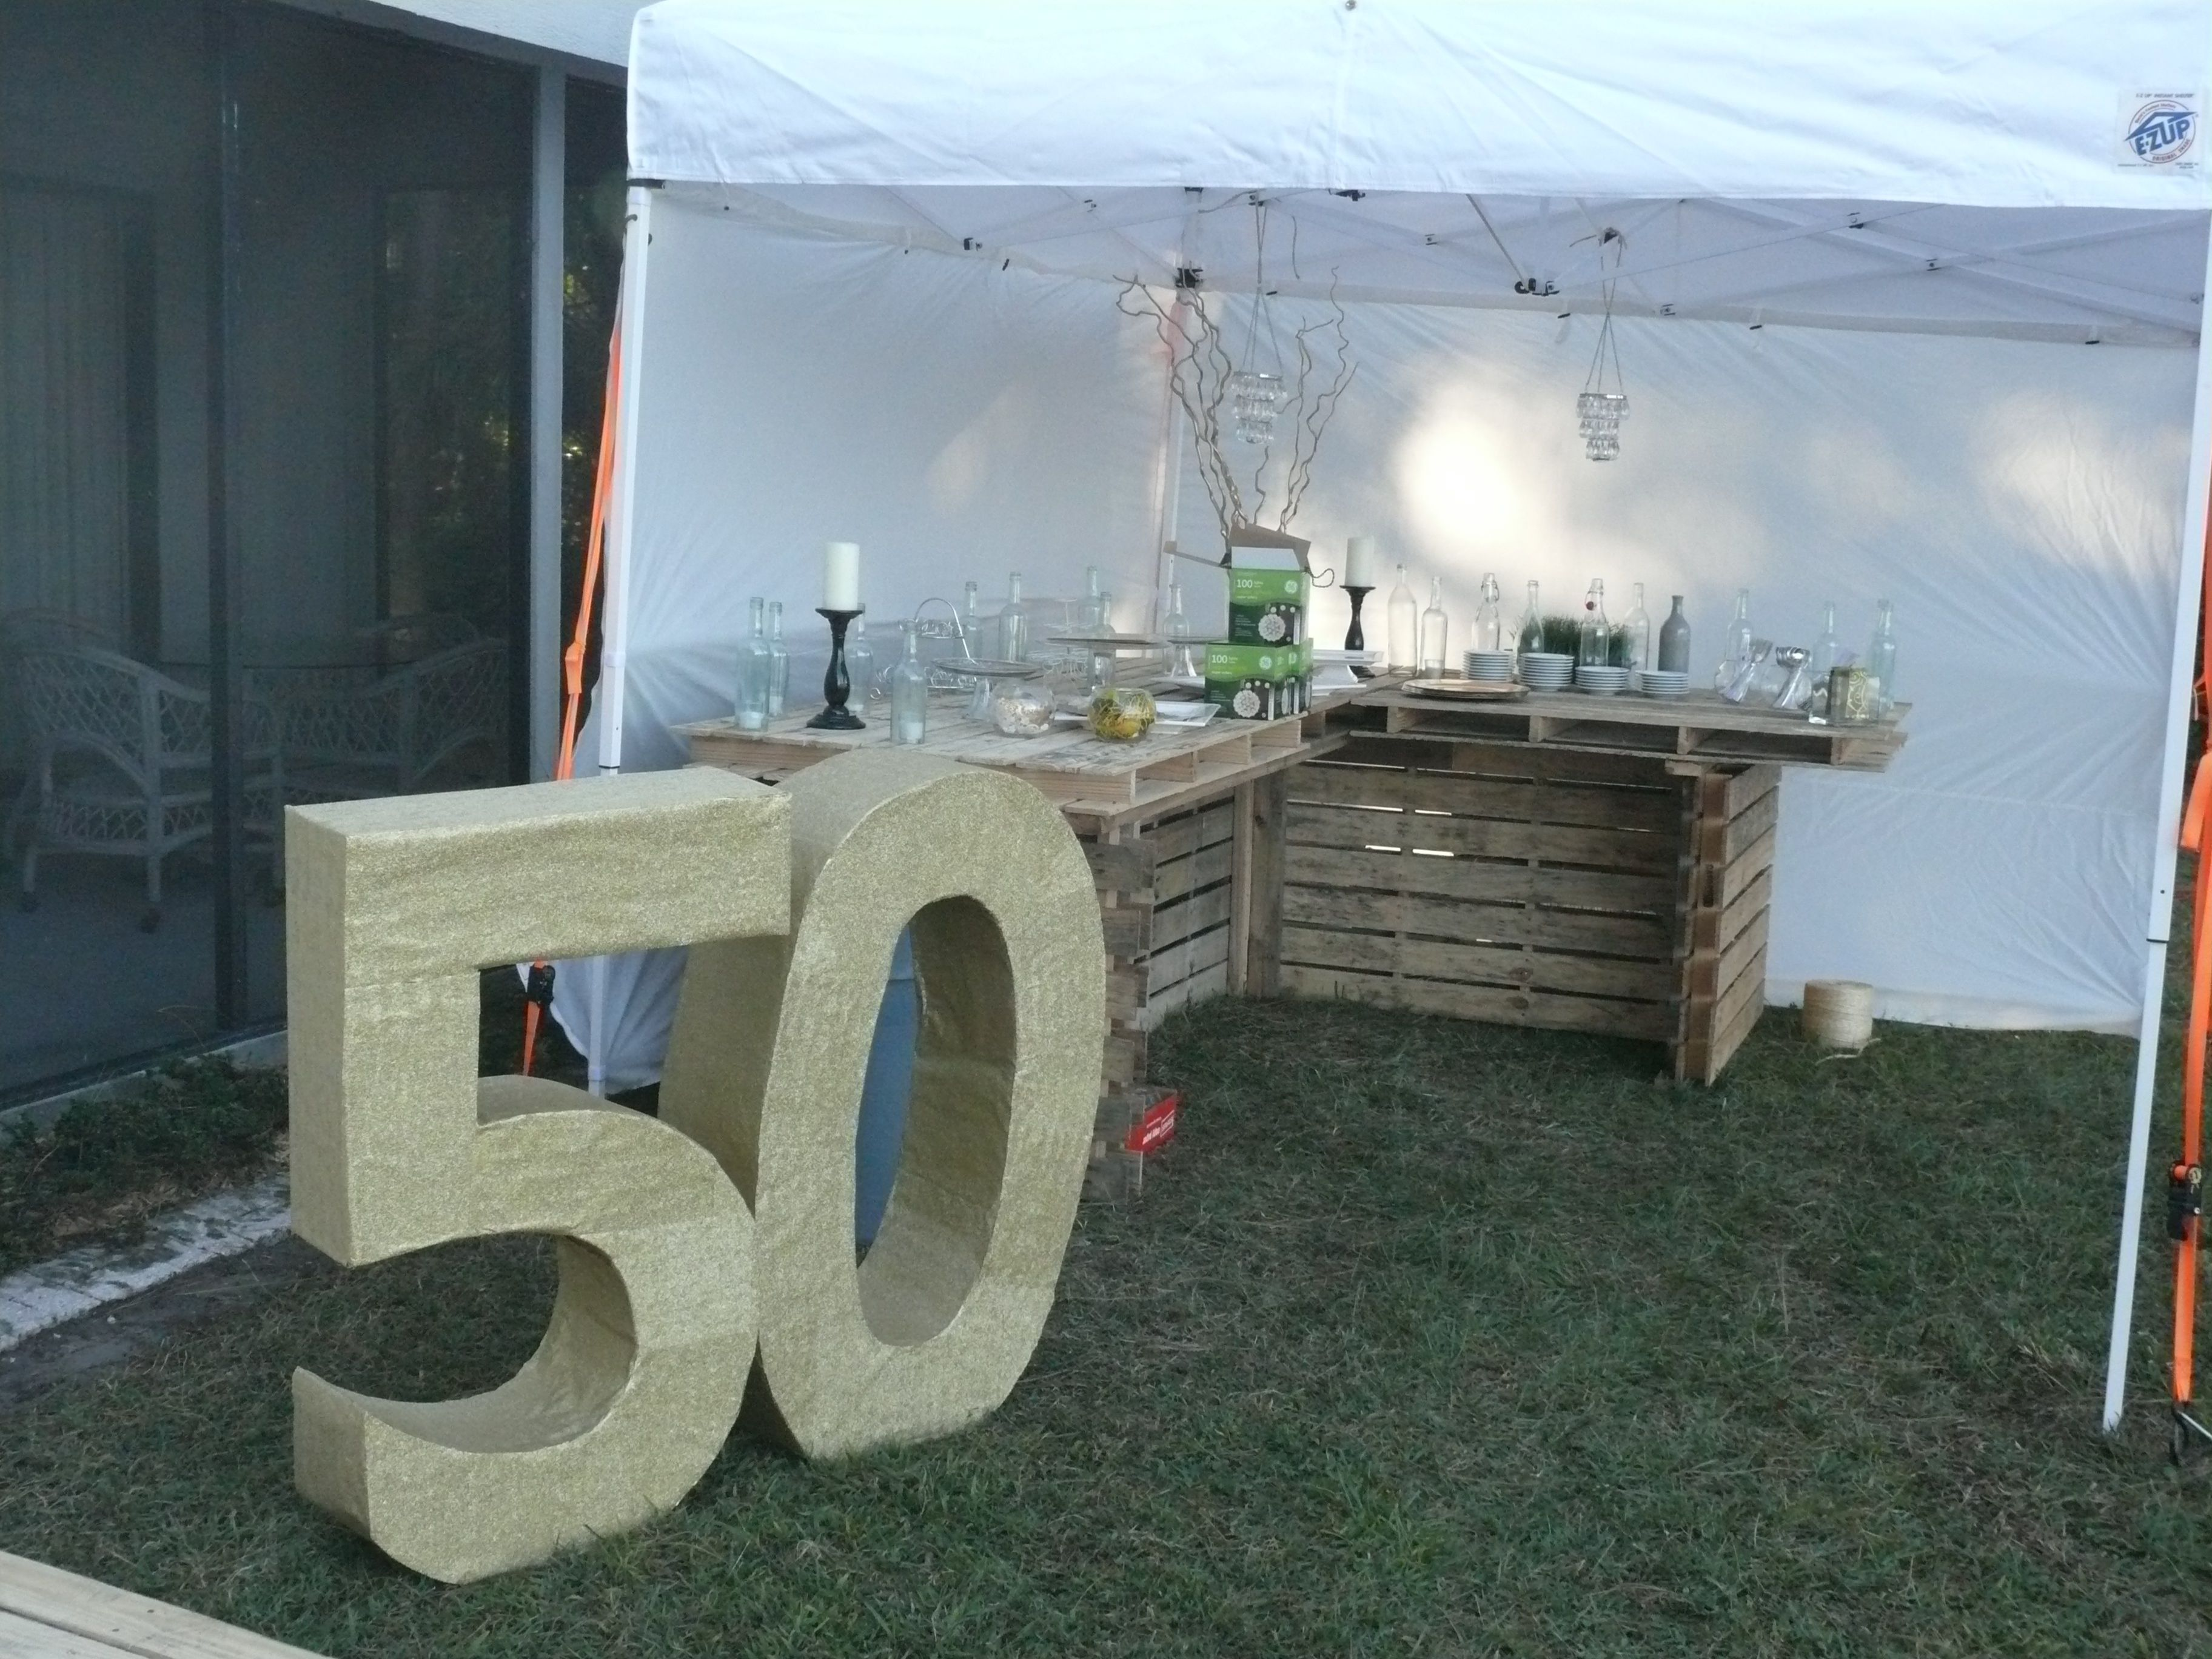 Bar Made Out Of Pallets 50 Made Out Of Cardboard And Wrapping Paper And A Dessert Bar Made